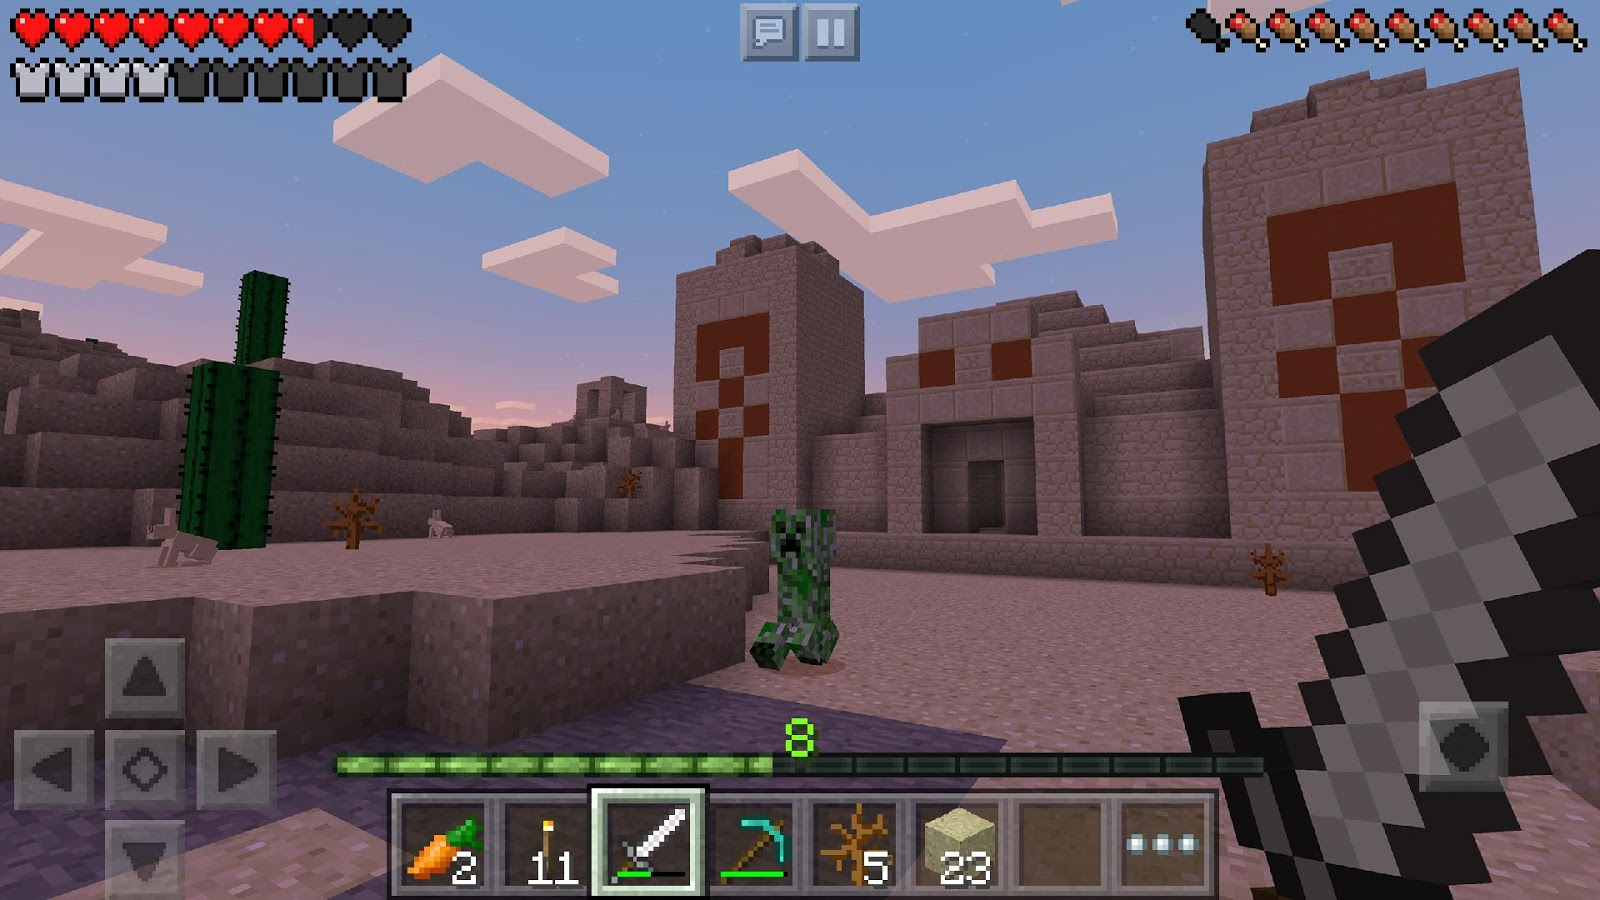 Minecraft: Pocket Edition Screenshot 5